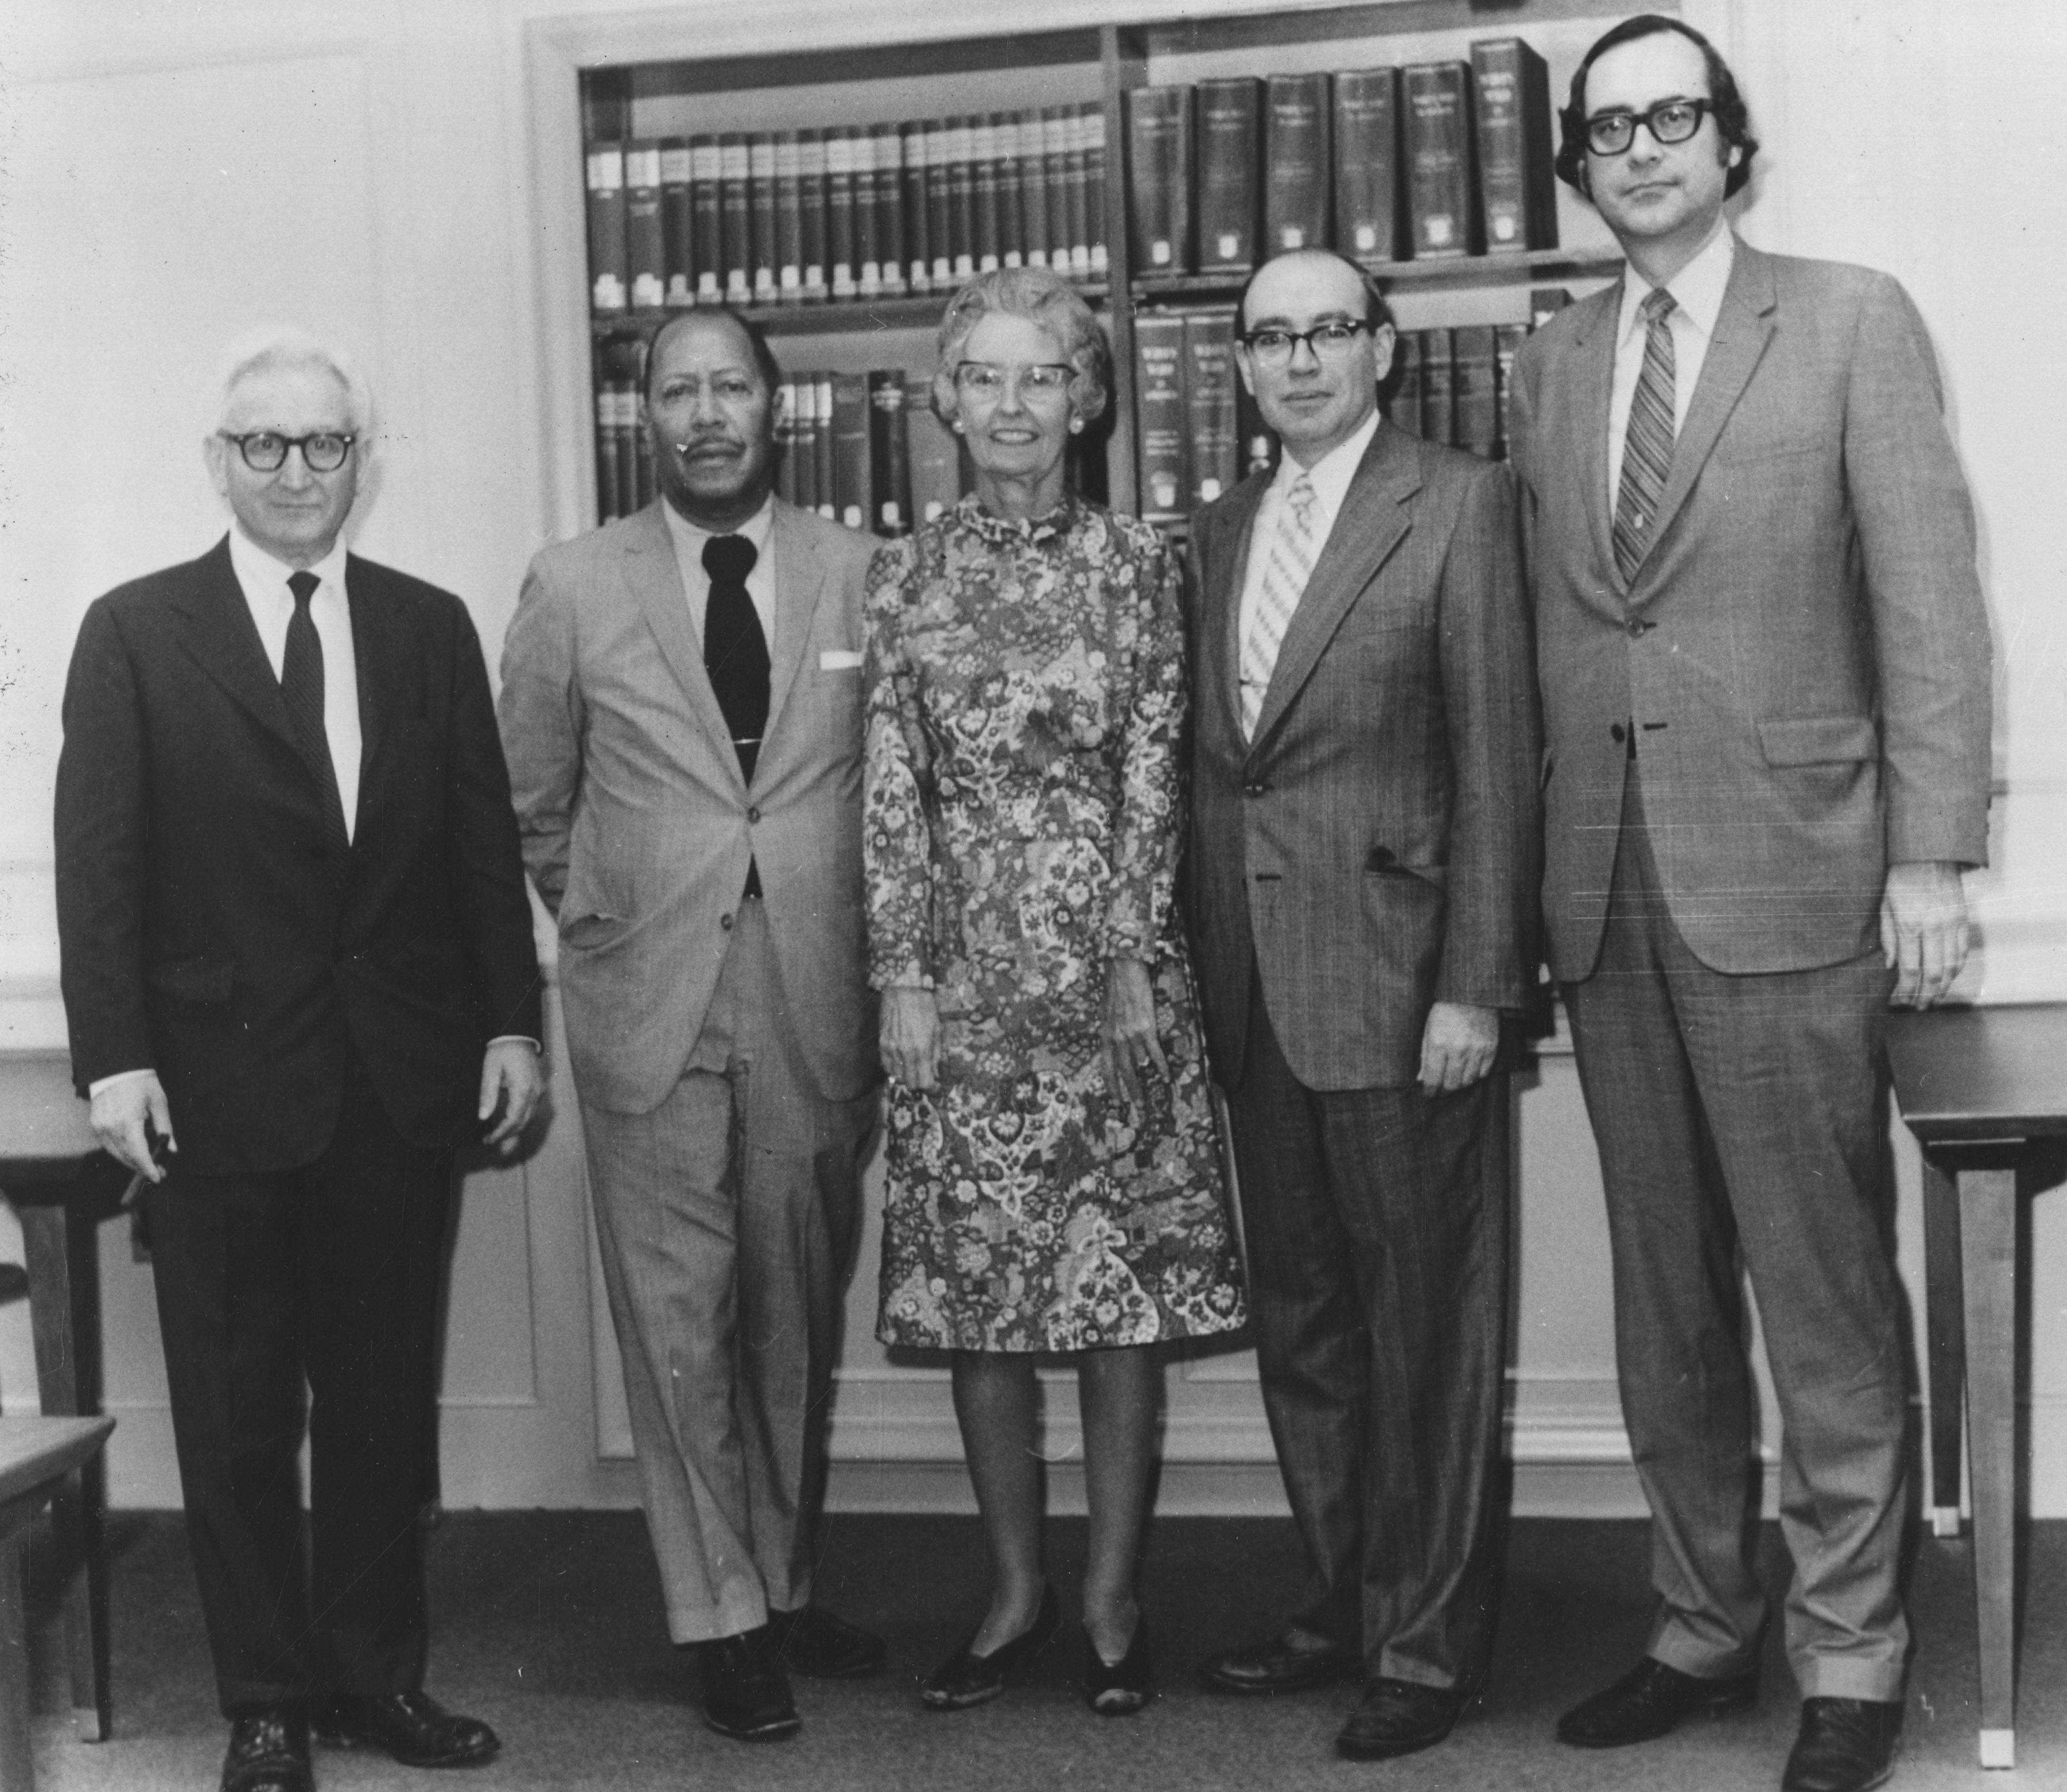 Photograph of the Dedication of Eleanor Roosevelt Wings, Roosevelt Presidential Library